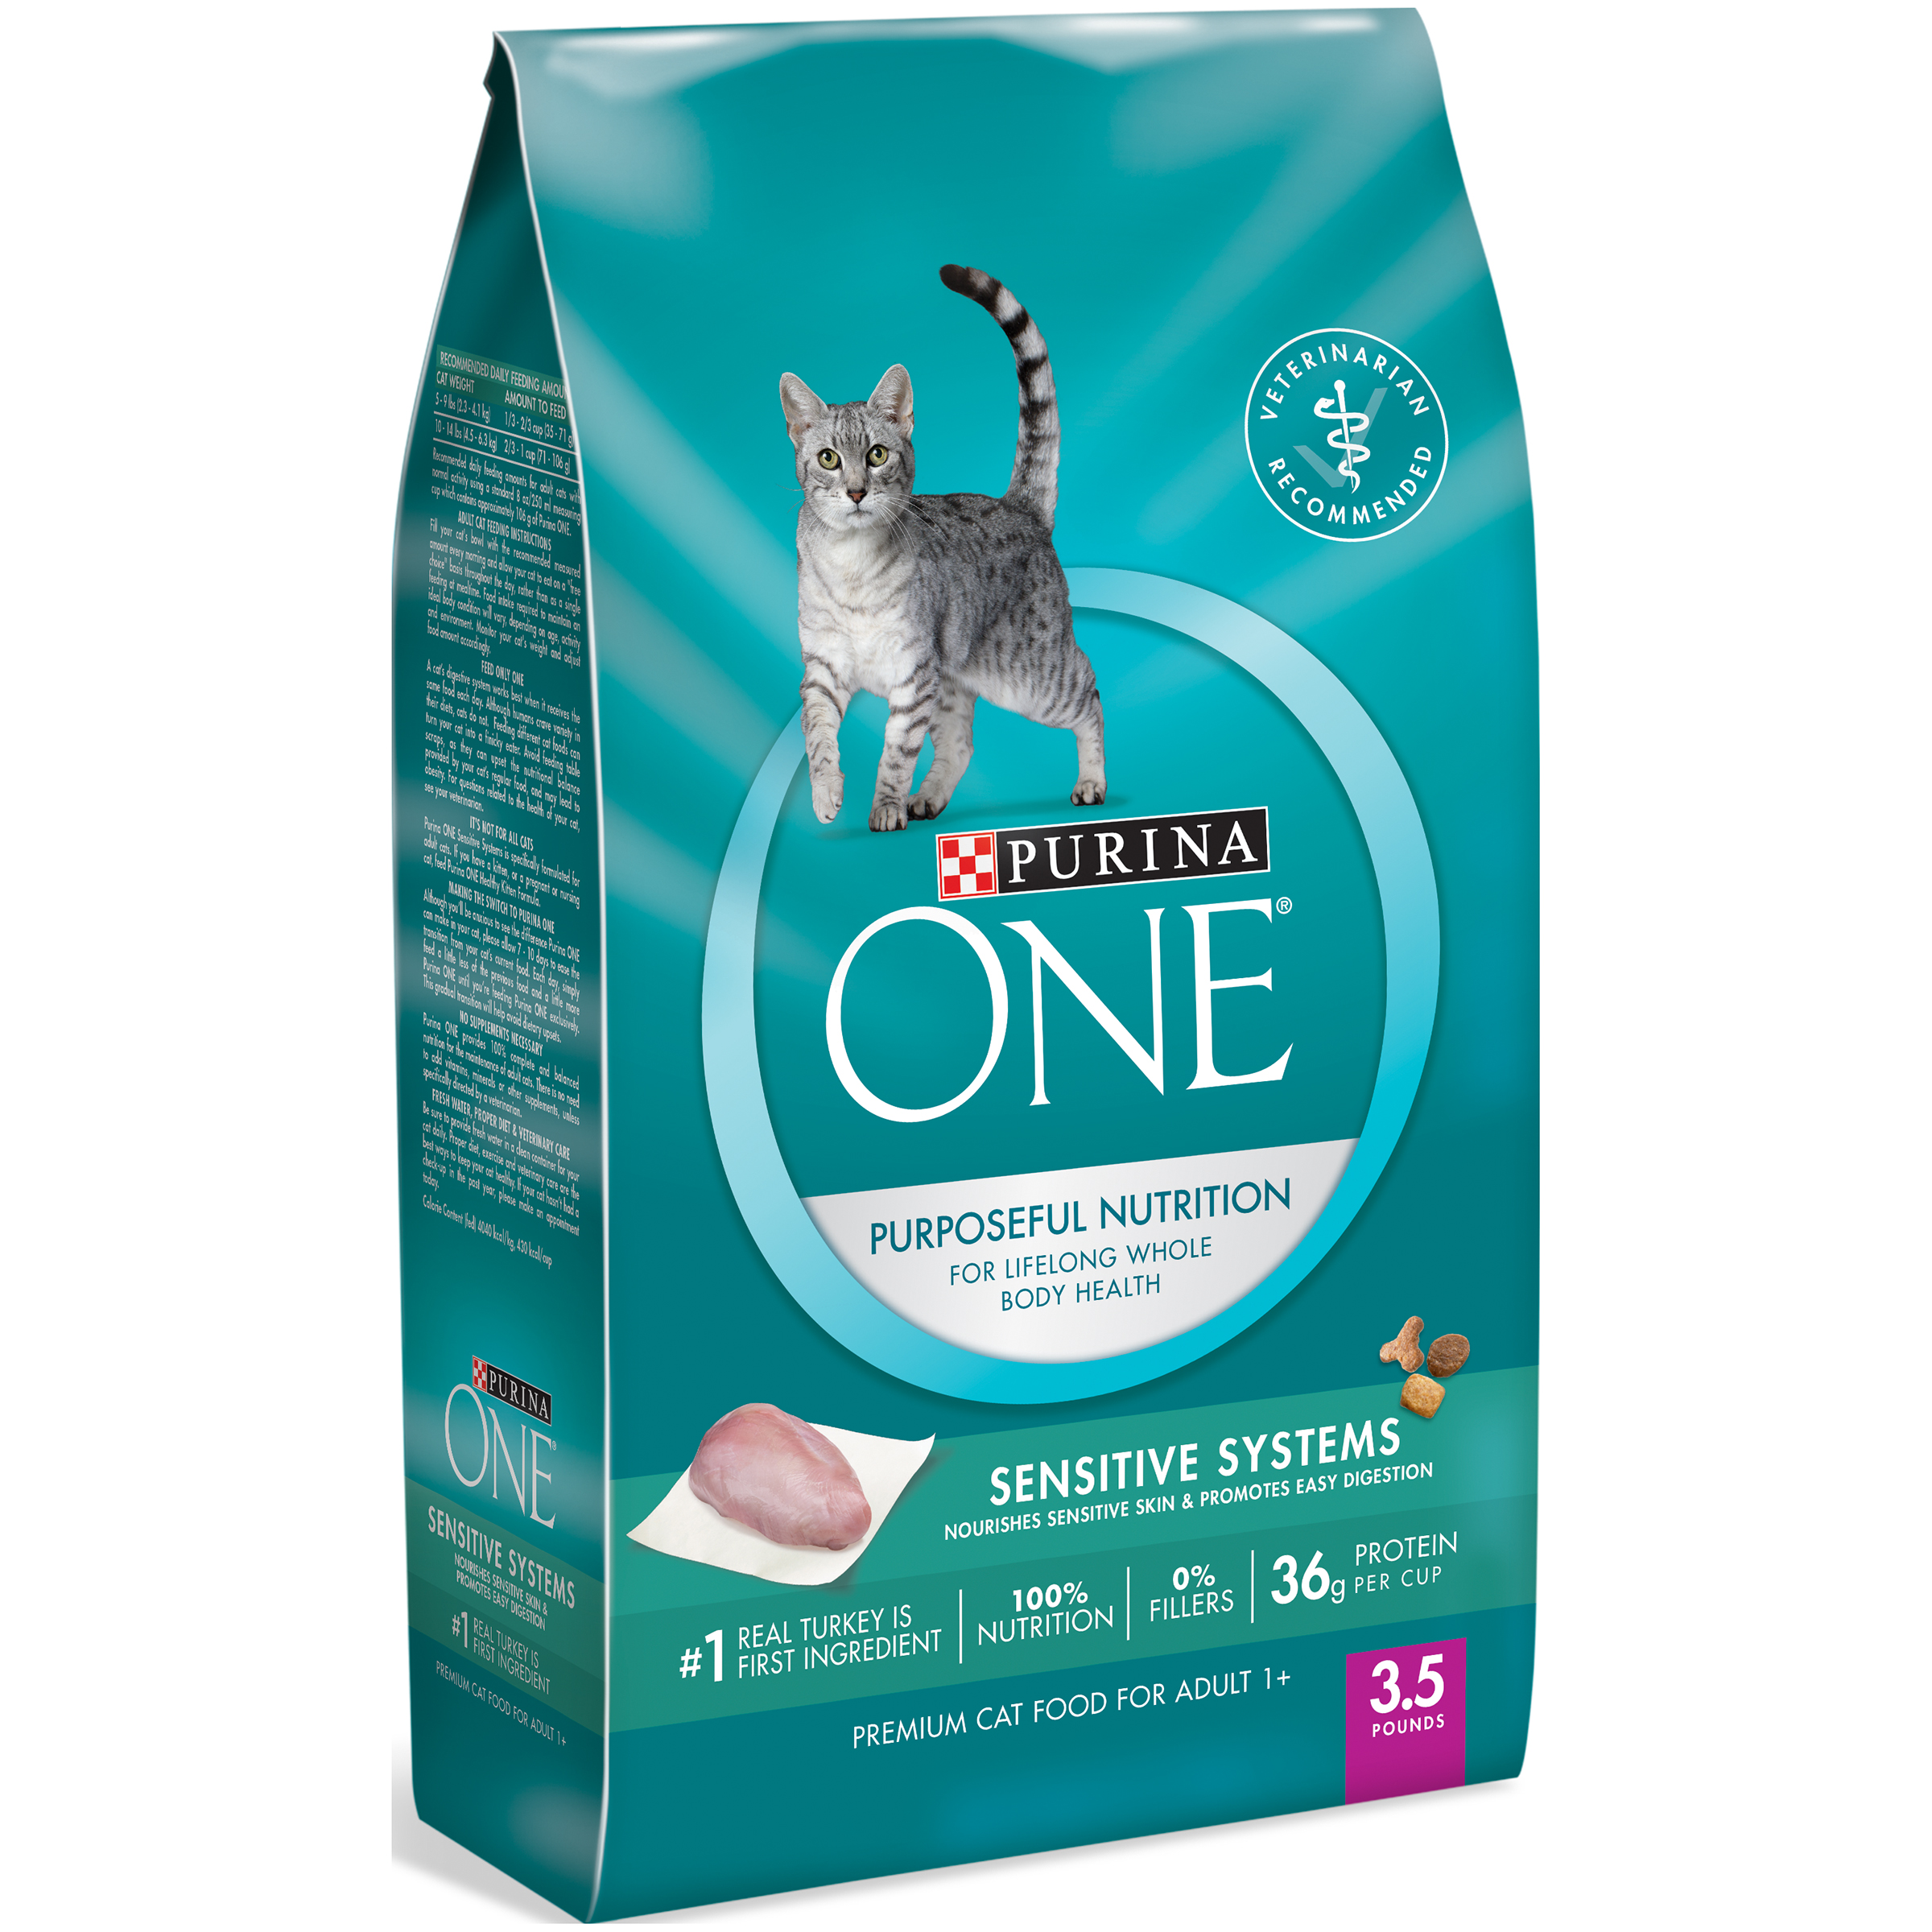 Alimento Para Gatos Purina ONE seco Premium Cat Food, sistemas sensibles, 3,5 lb bolsa + Purina One en Veo y Compro